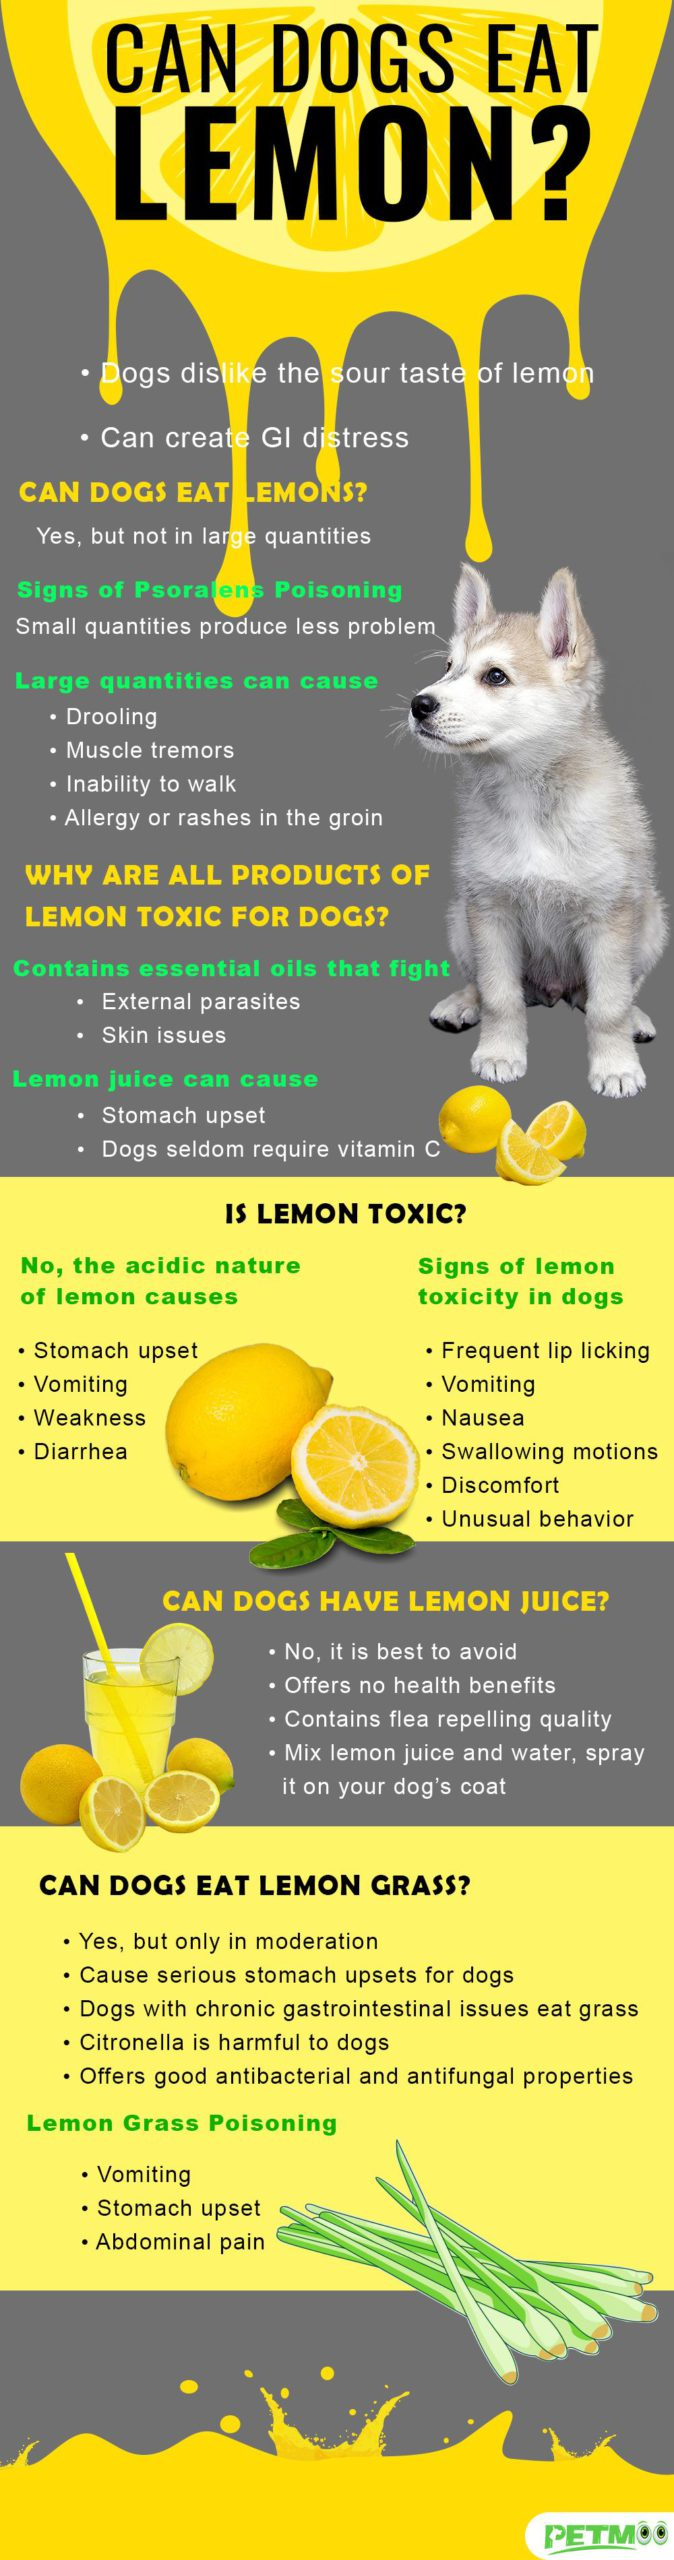 Can Dogs Eat Lemon Infographic